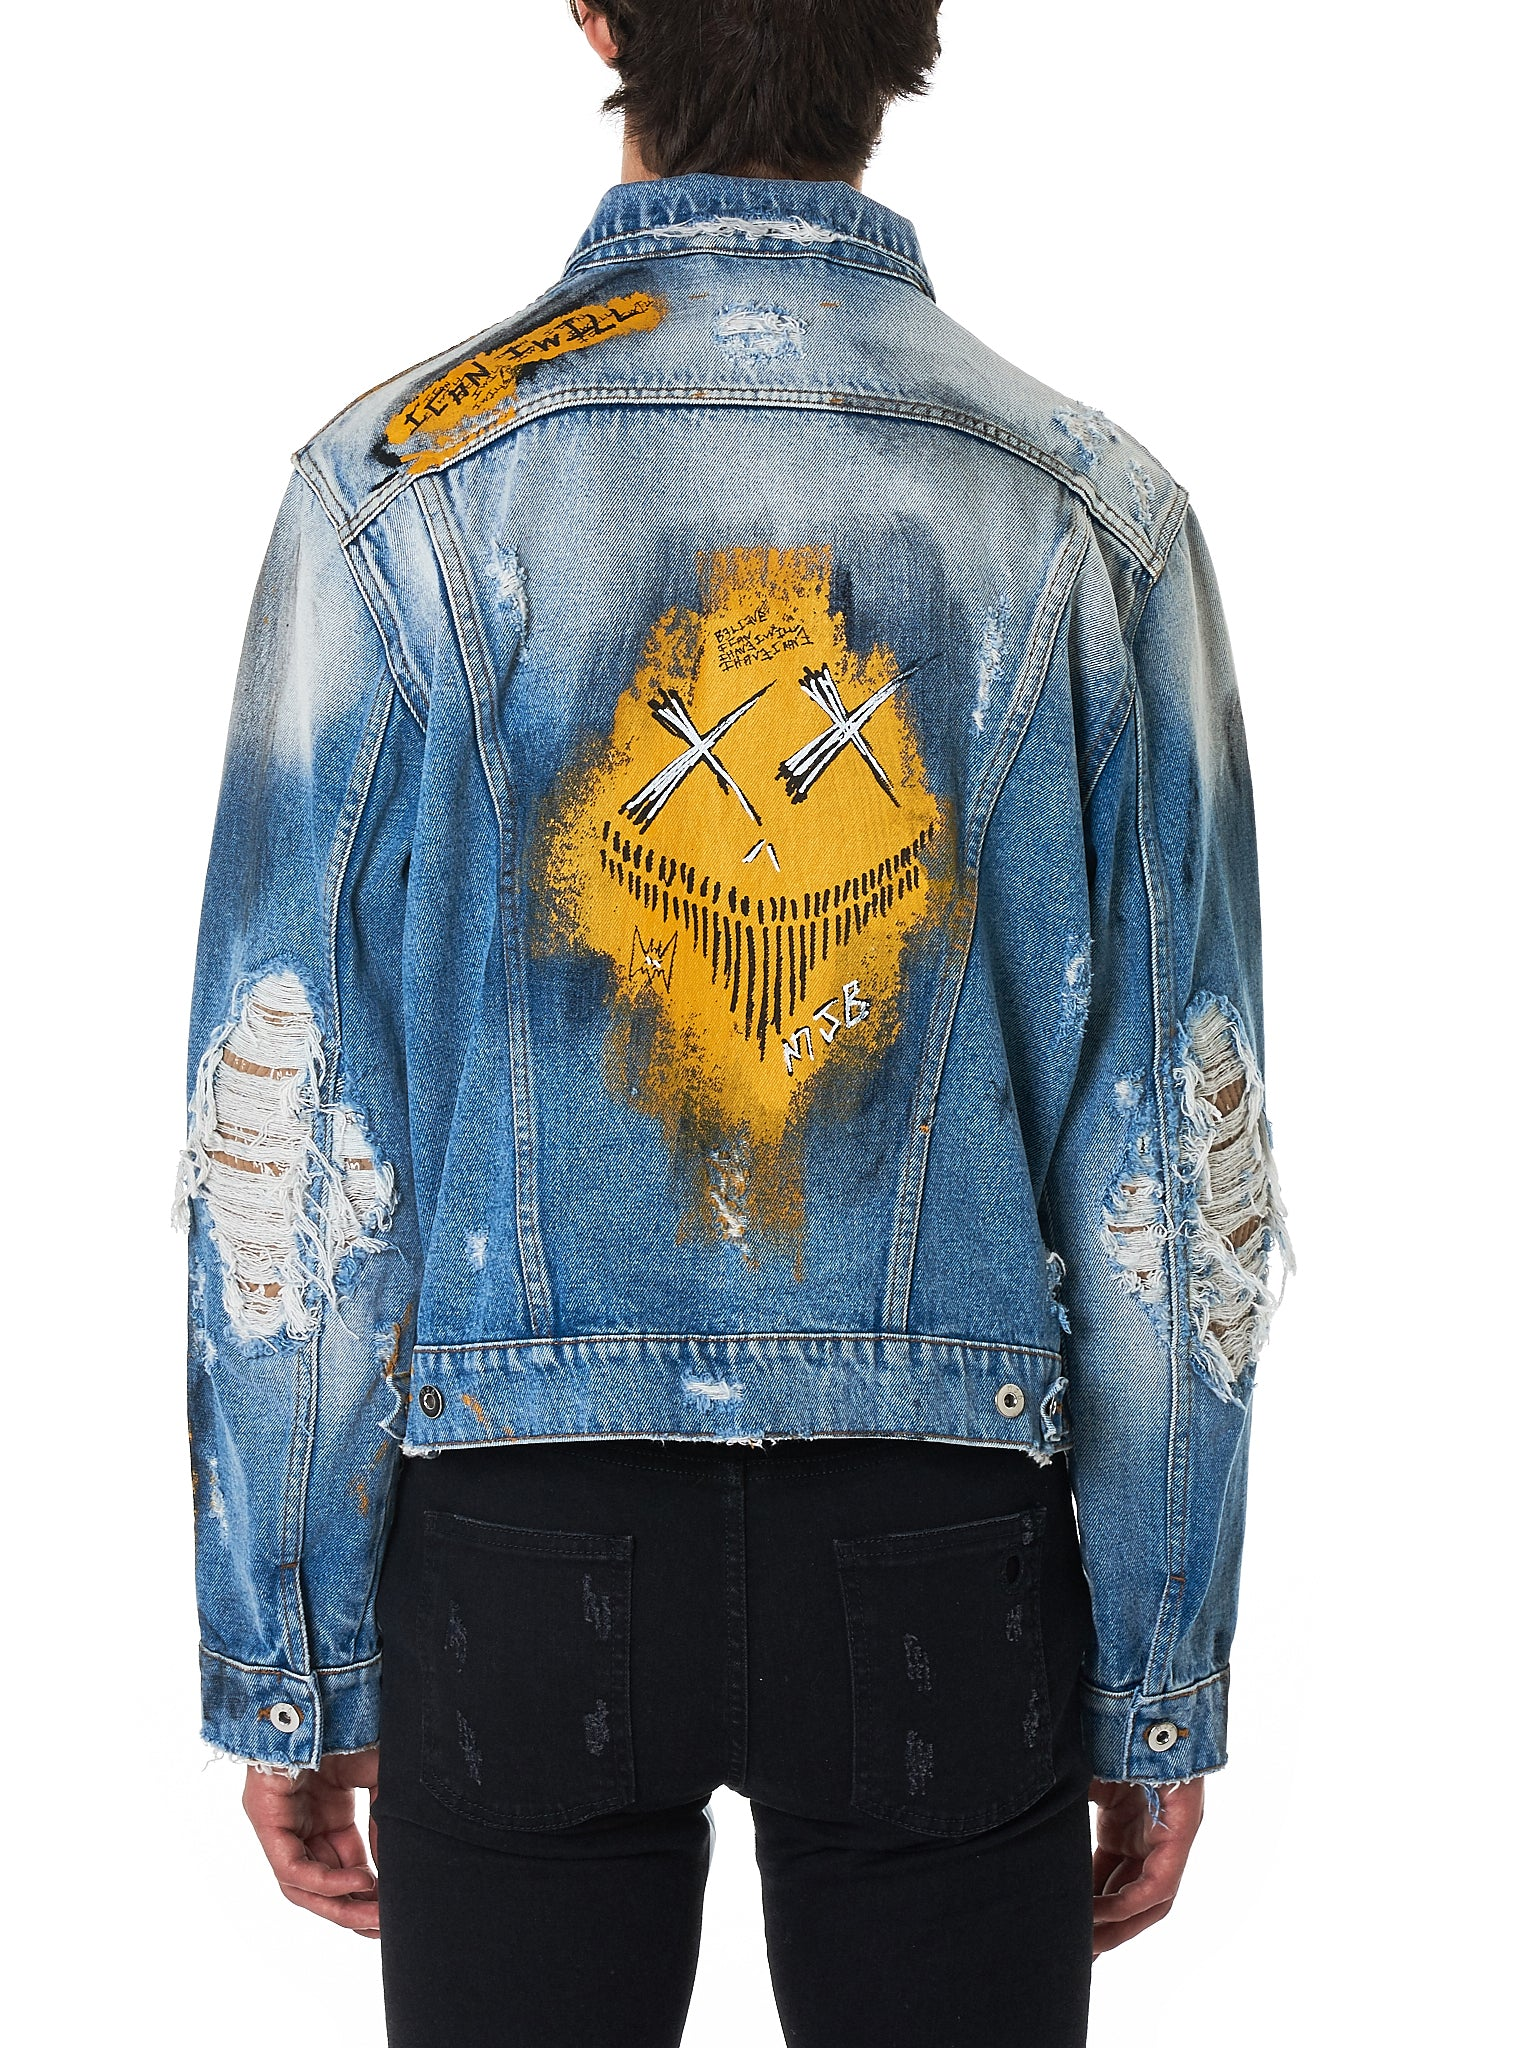 MJB (Marc Jacques Burton) Denim Jacket - Hlorenzo Back